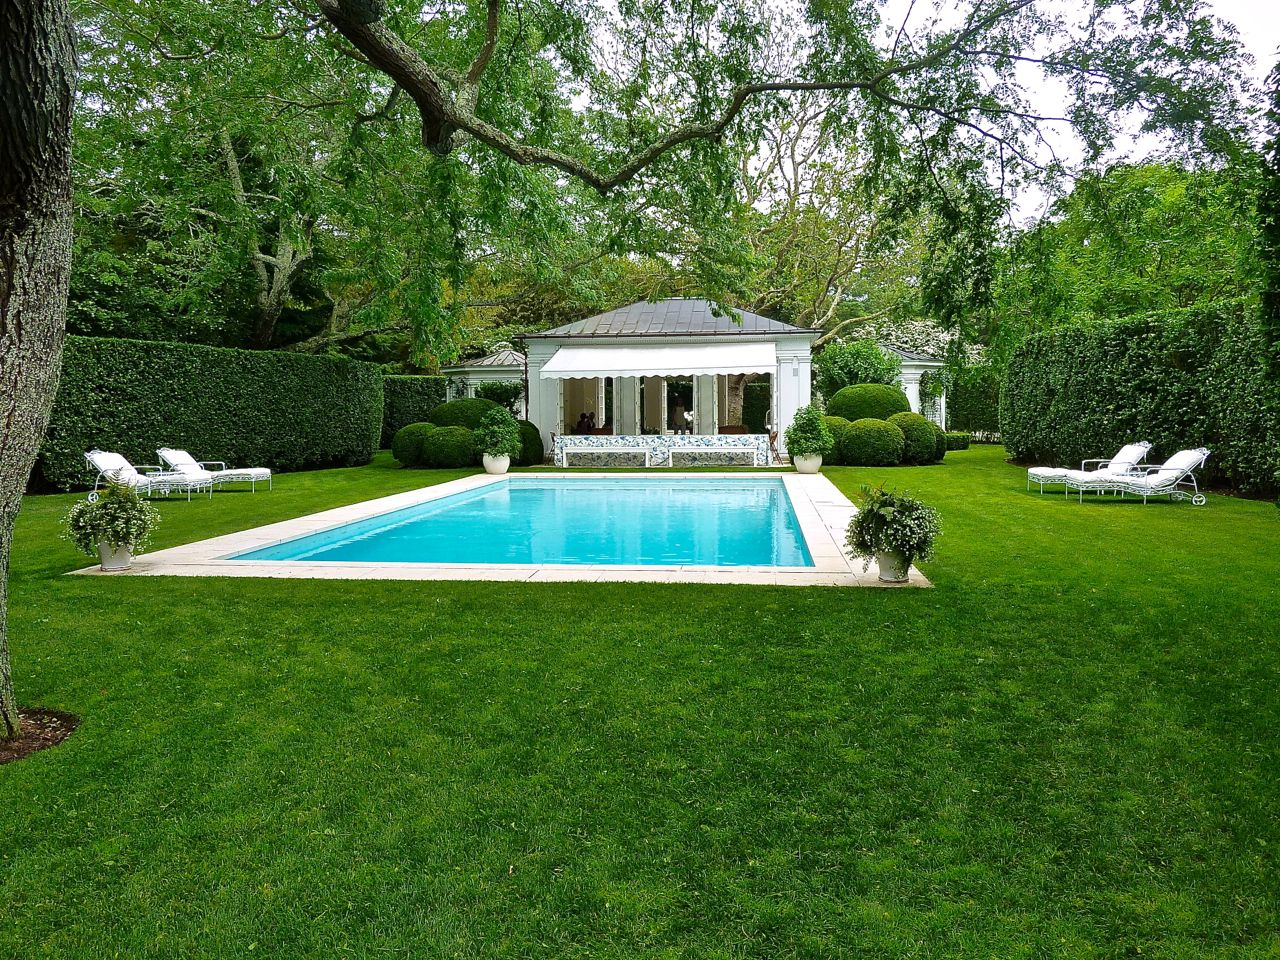 Aerin lauder pool hamptons via quintessence gardens for Pool design hamptons